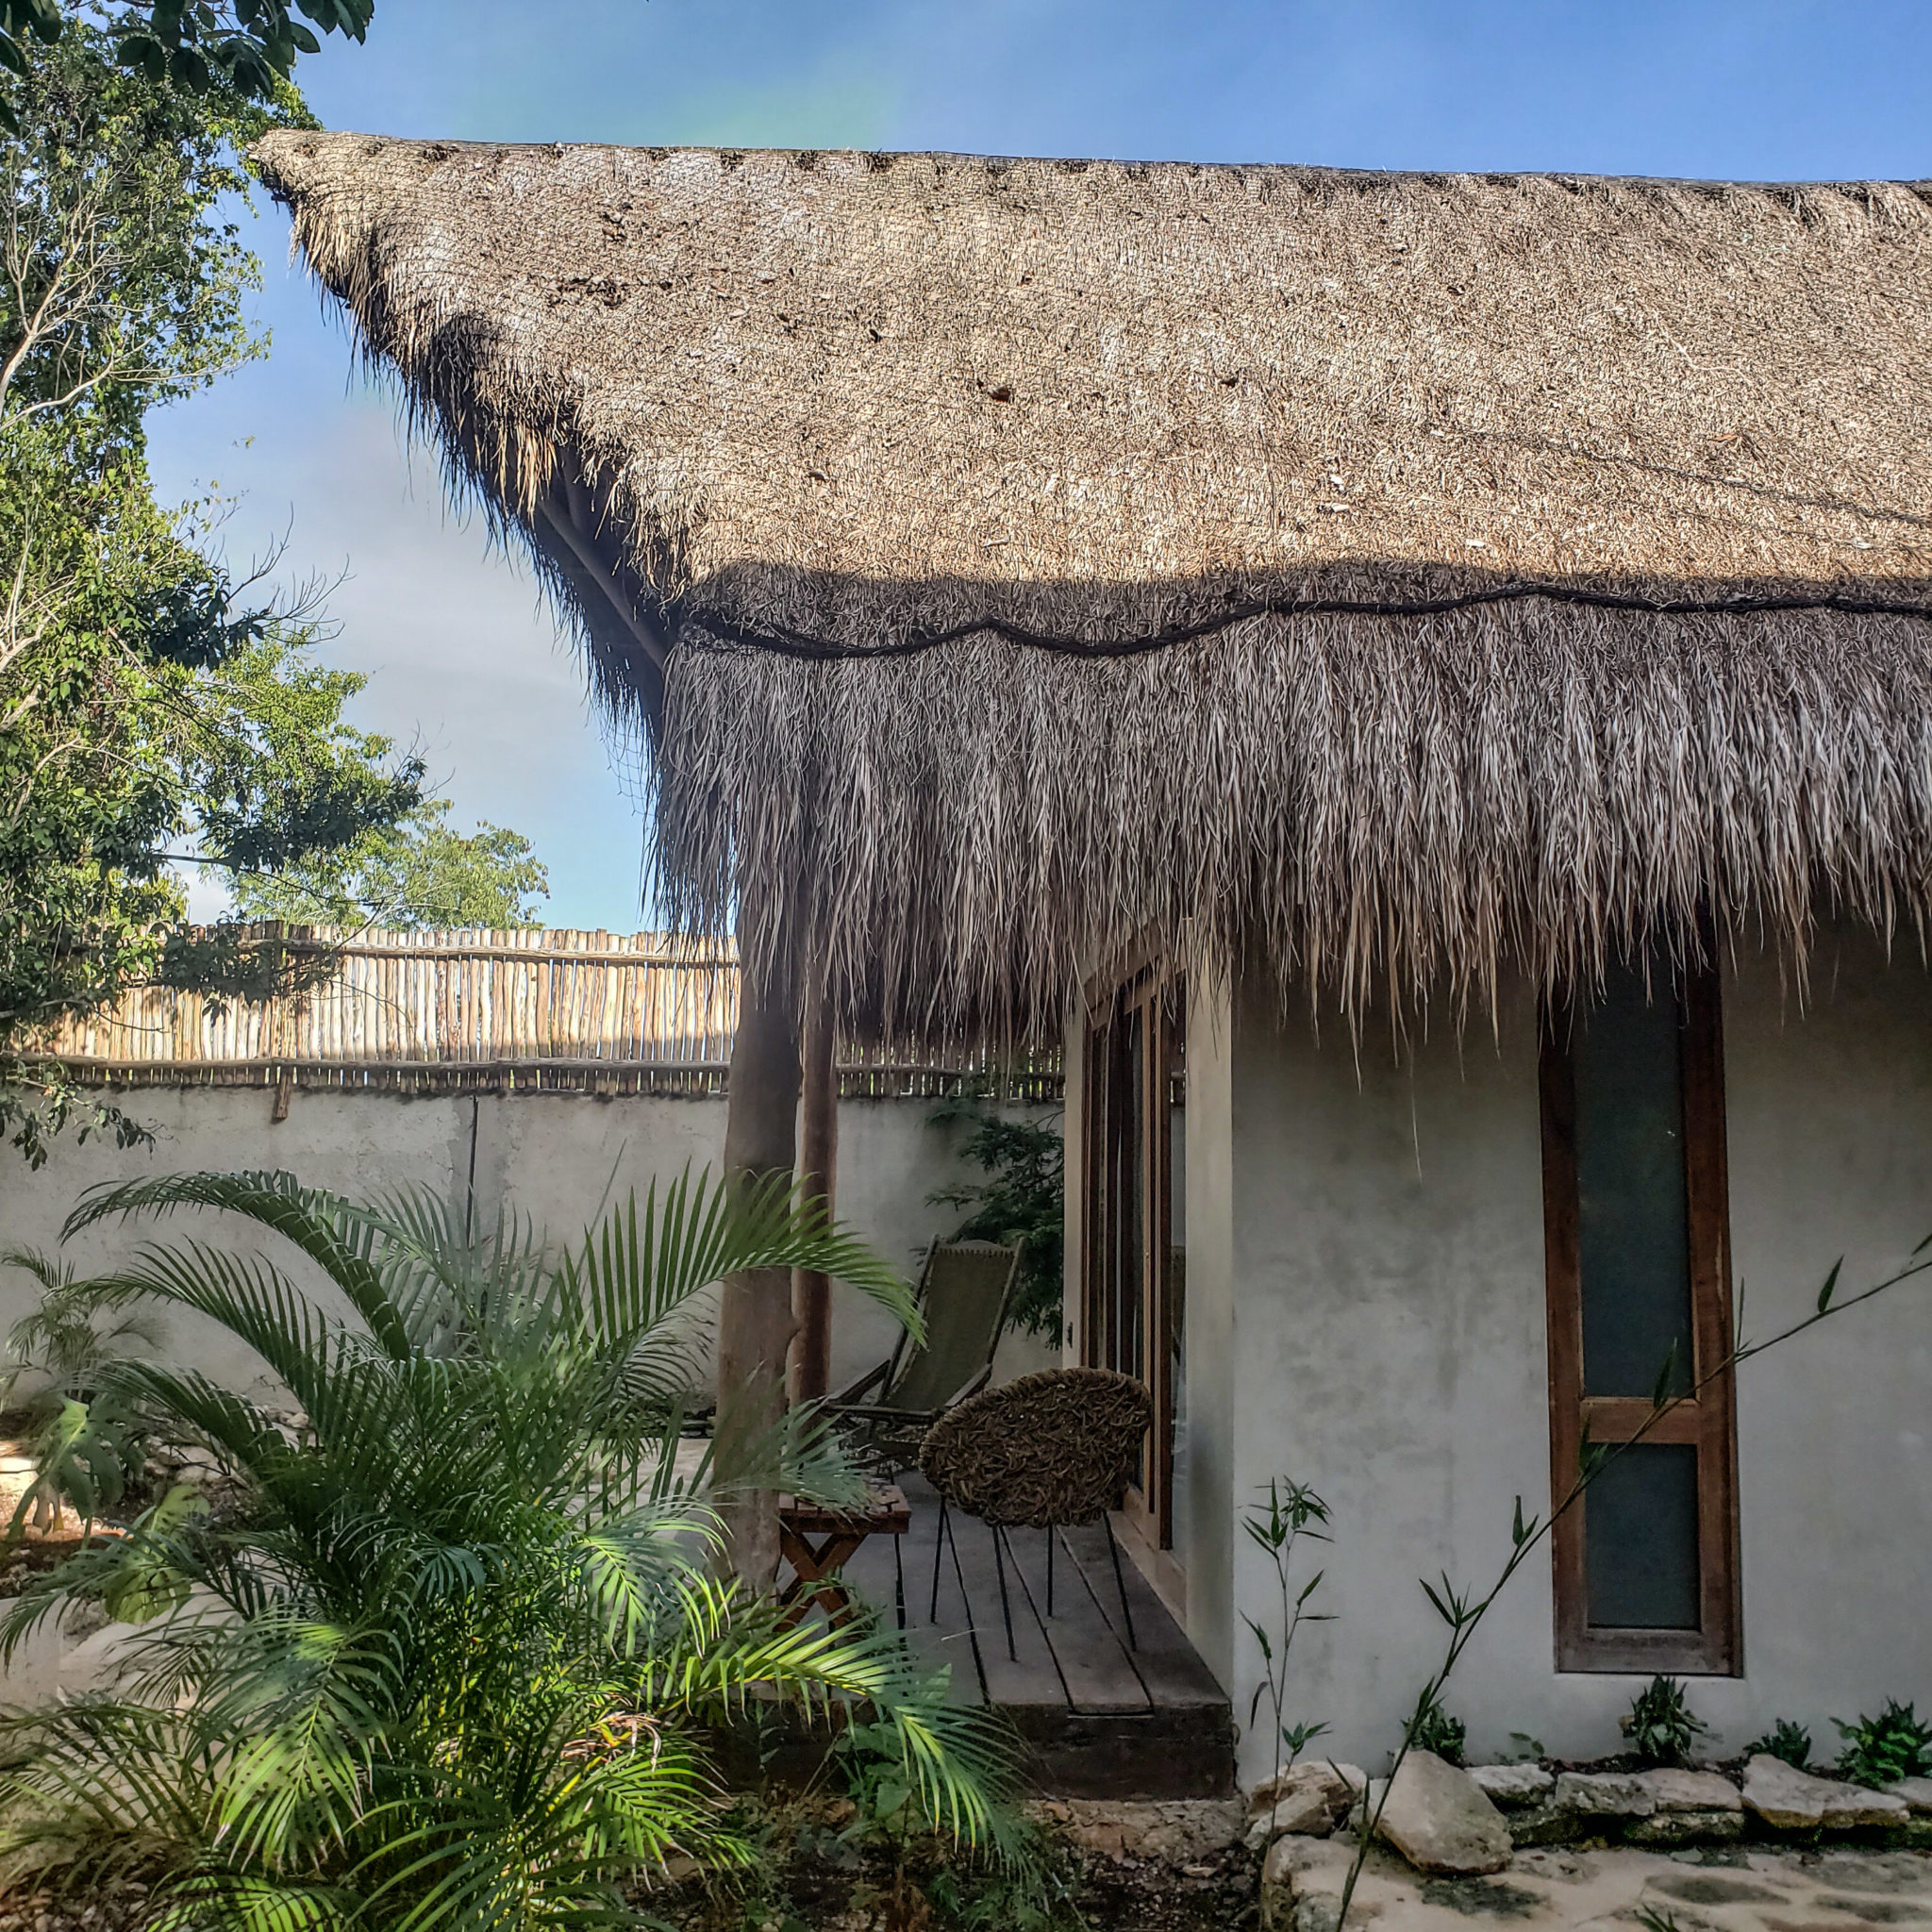 Acacia Jungle Bungalows Tulum